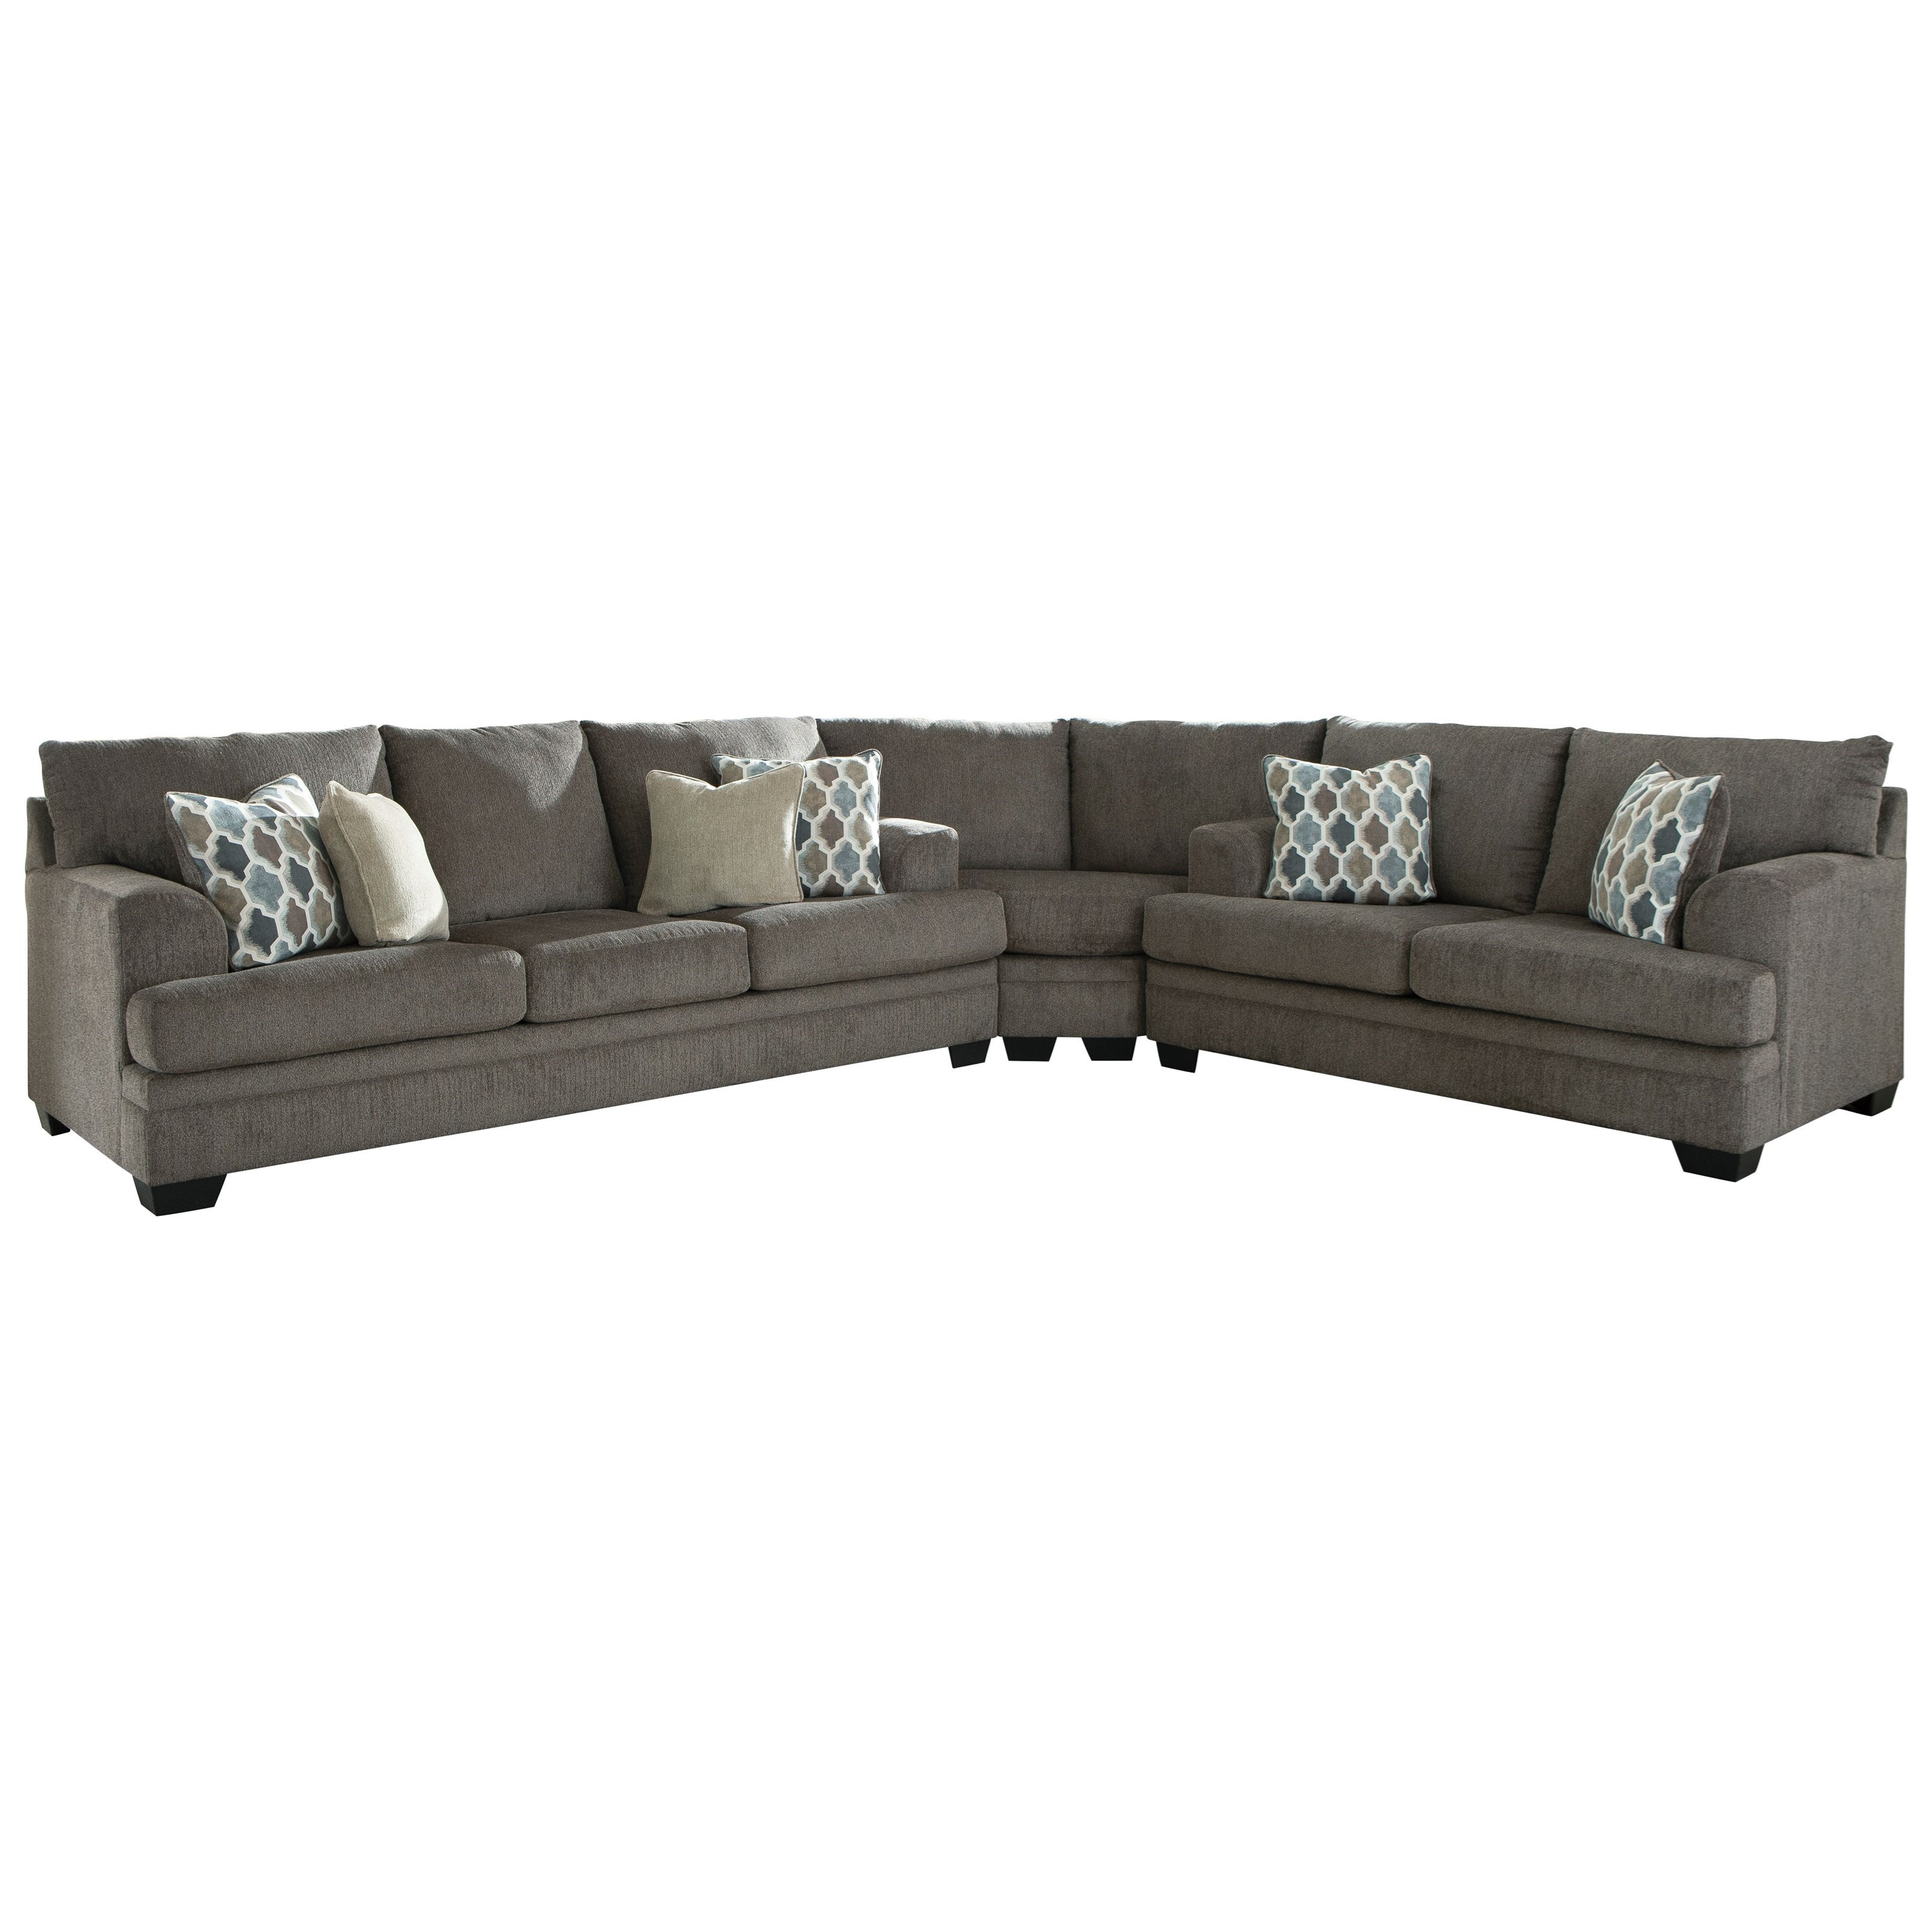 Dorsten 3-Piece Sectional by Signature Design by Ashley at Furniture Fair - North Carolina